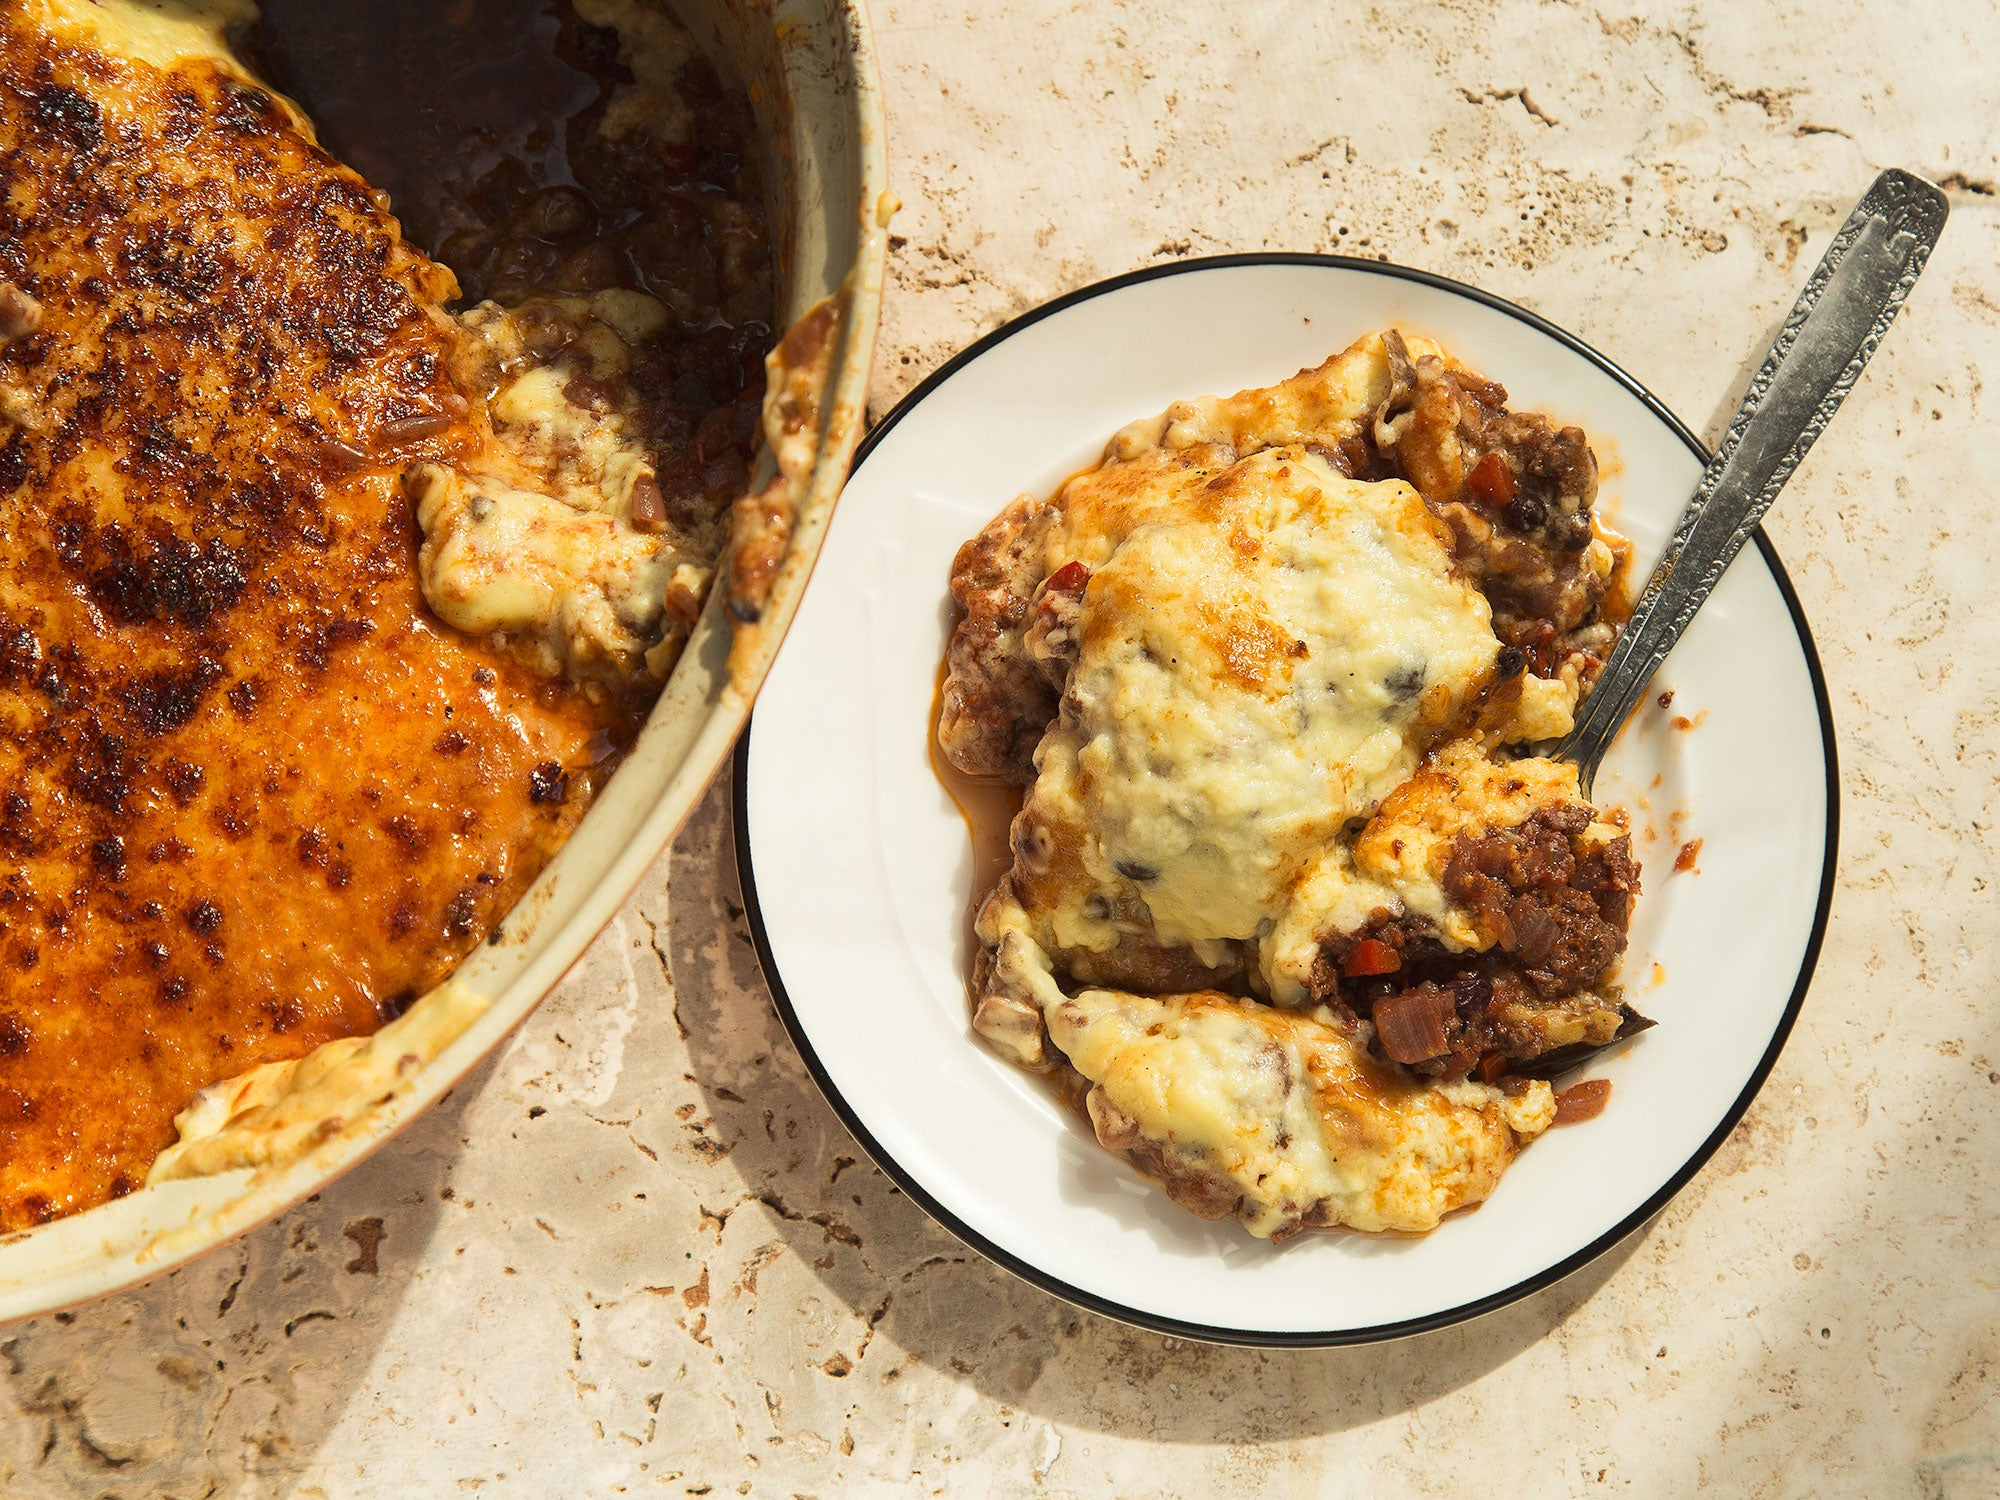 Greek Moussaka is the One-Dish Meal With a Little Bit of Everything